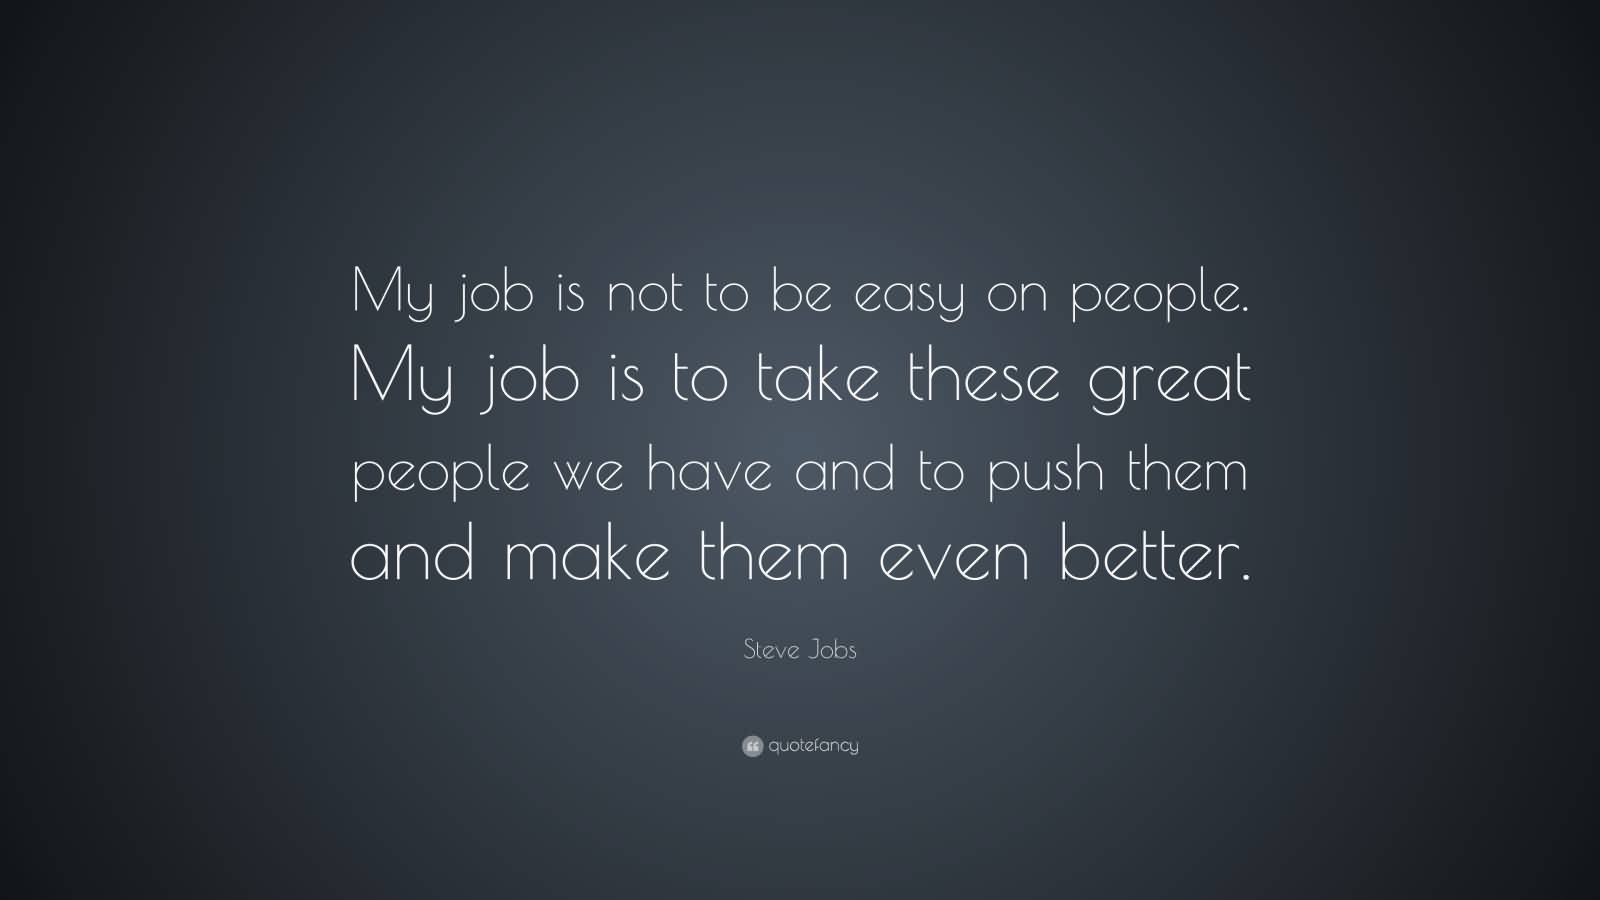 My job is not to be easy on people. My job is to take these great people we have and to push them and make them even better.Steve Jobs